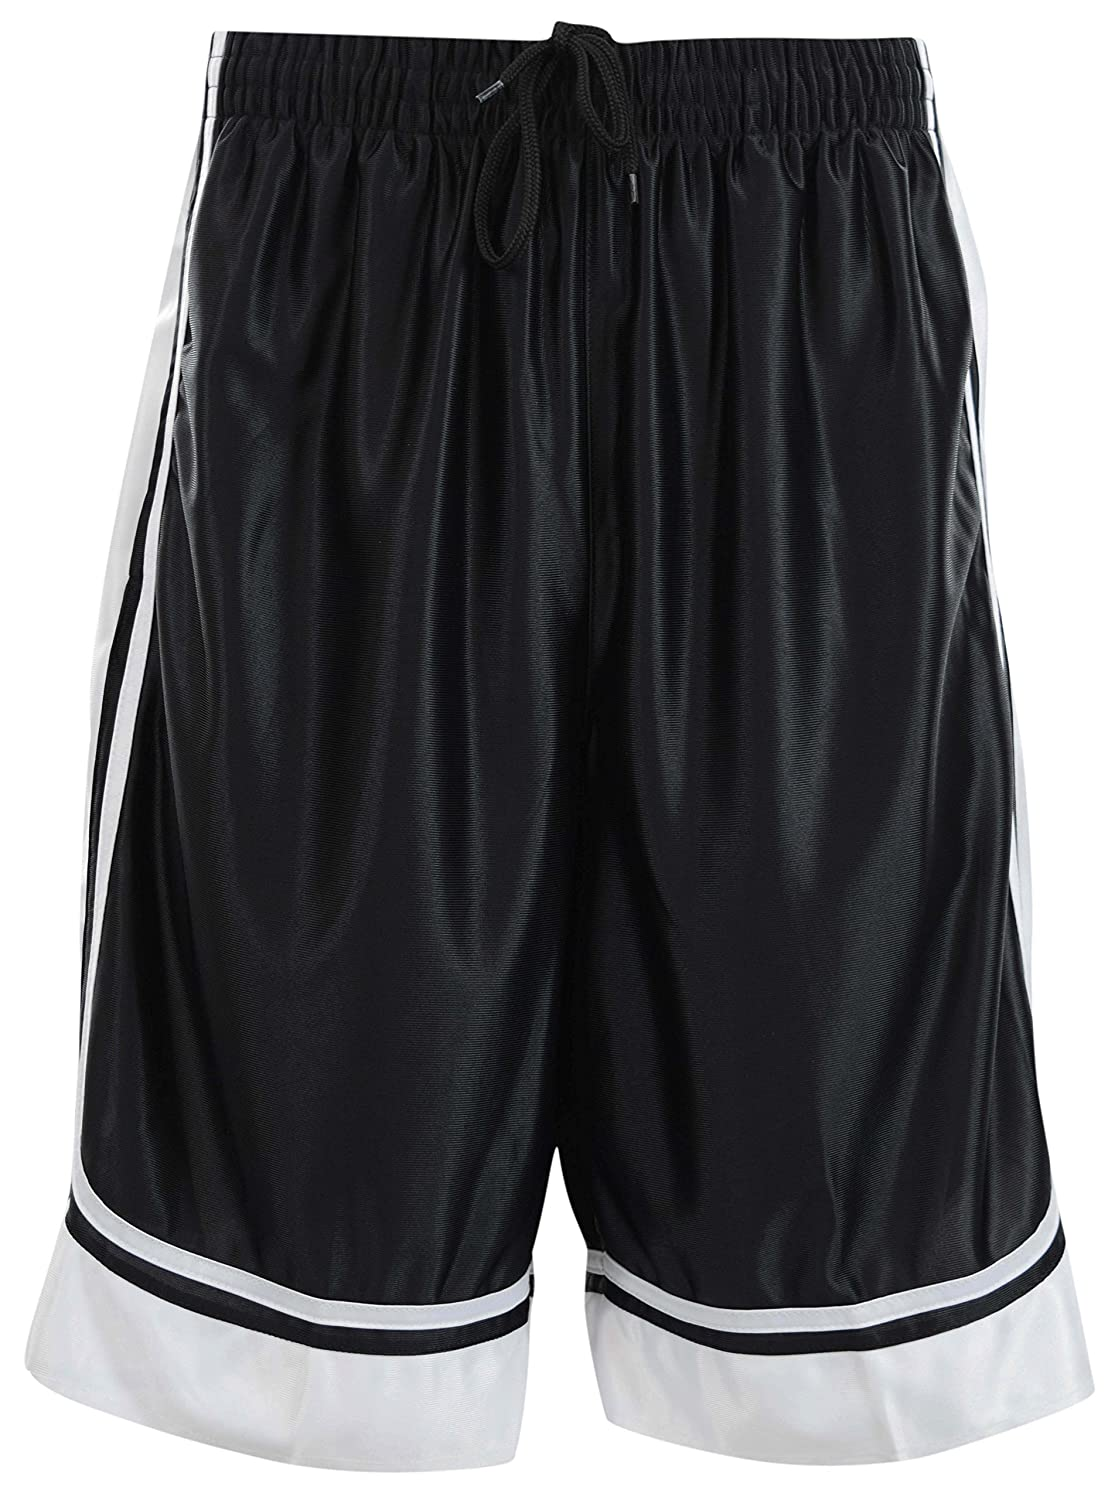 Mens Two Tone Training/Basketball Shorts with Pockets (S up to 4XL)